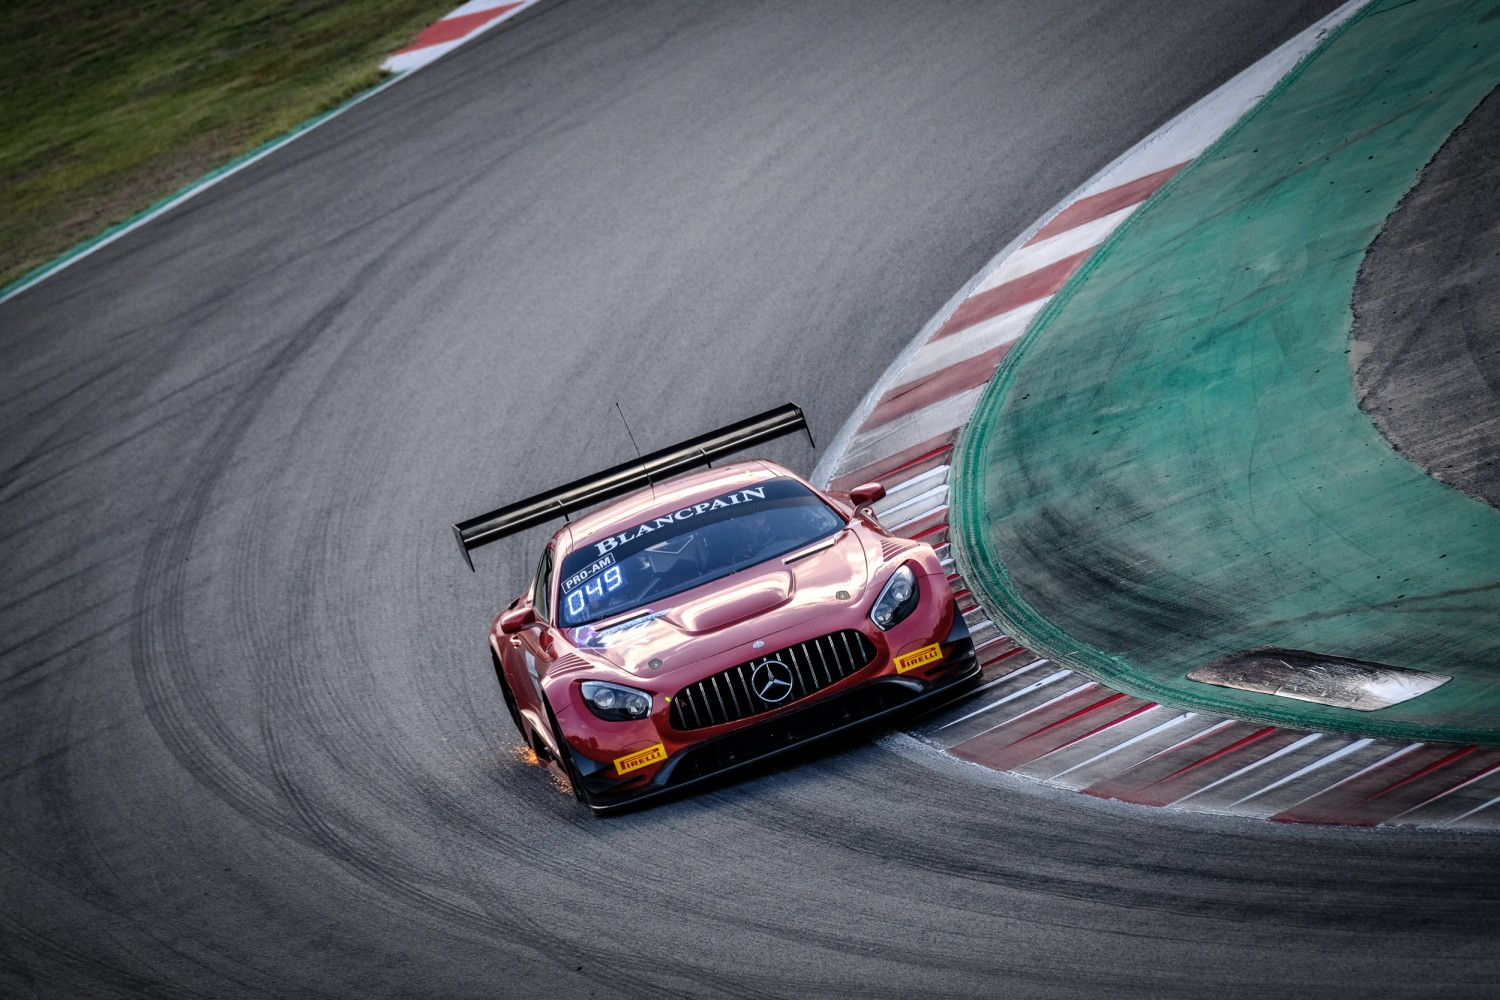 #49 Ram Racing GBR Mercedes-AMG GT3 Pro-Am Cup Remon Vos NDL - - Tom Onslow-Cole GBR, Qualifying  | SRO / Dirk Bogaerts Photography